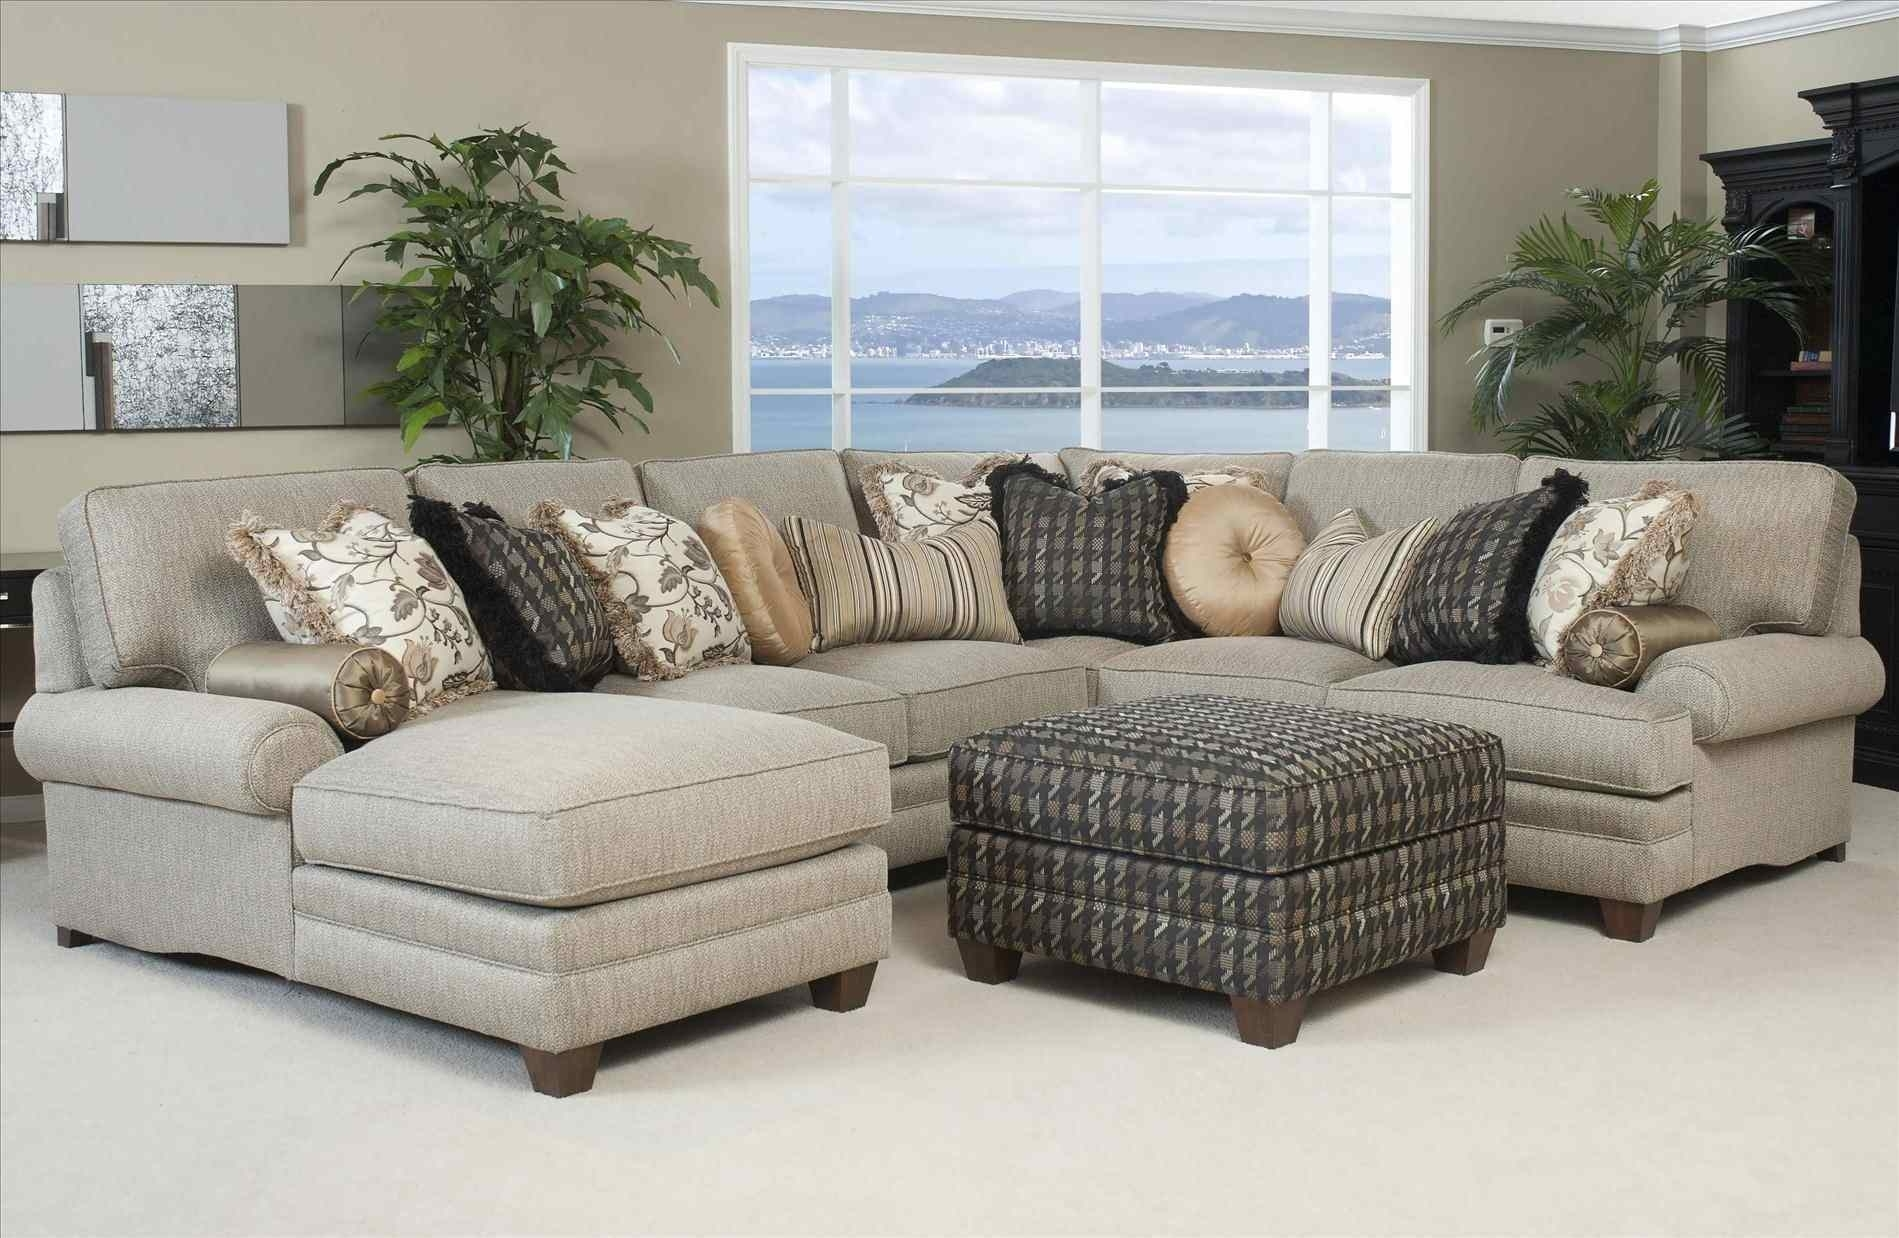 Couch : Furniture Bad Boy Sectional Es Wrap Around Couch Furniture With Sectional Sofas At Bad Boy (View 4 of 10)